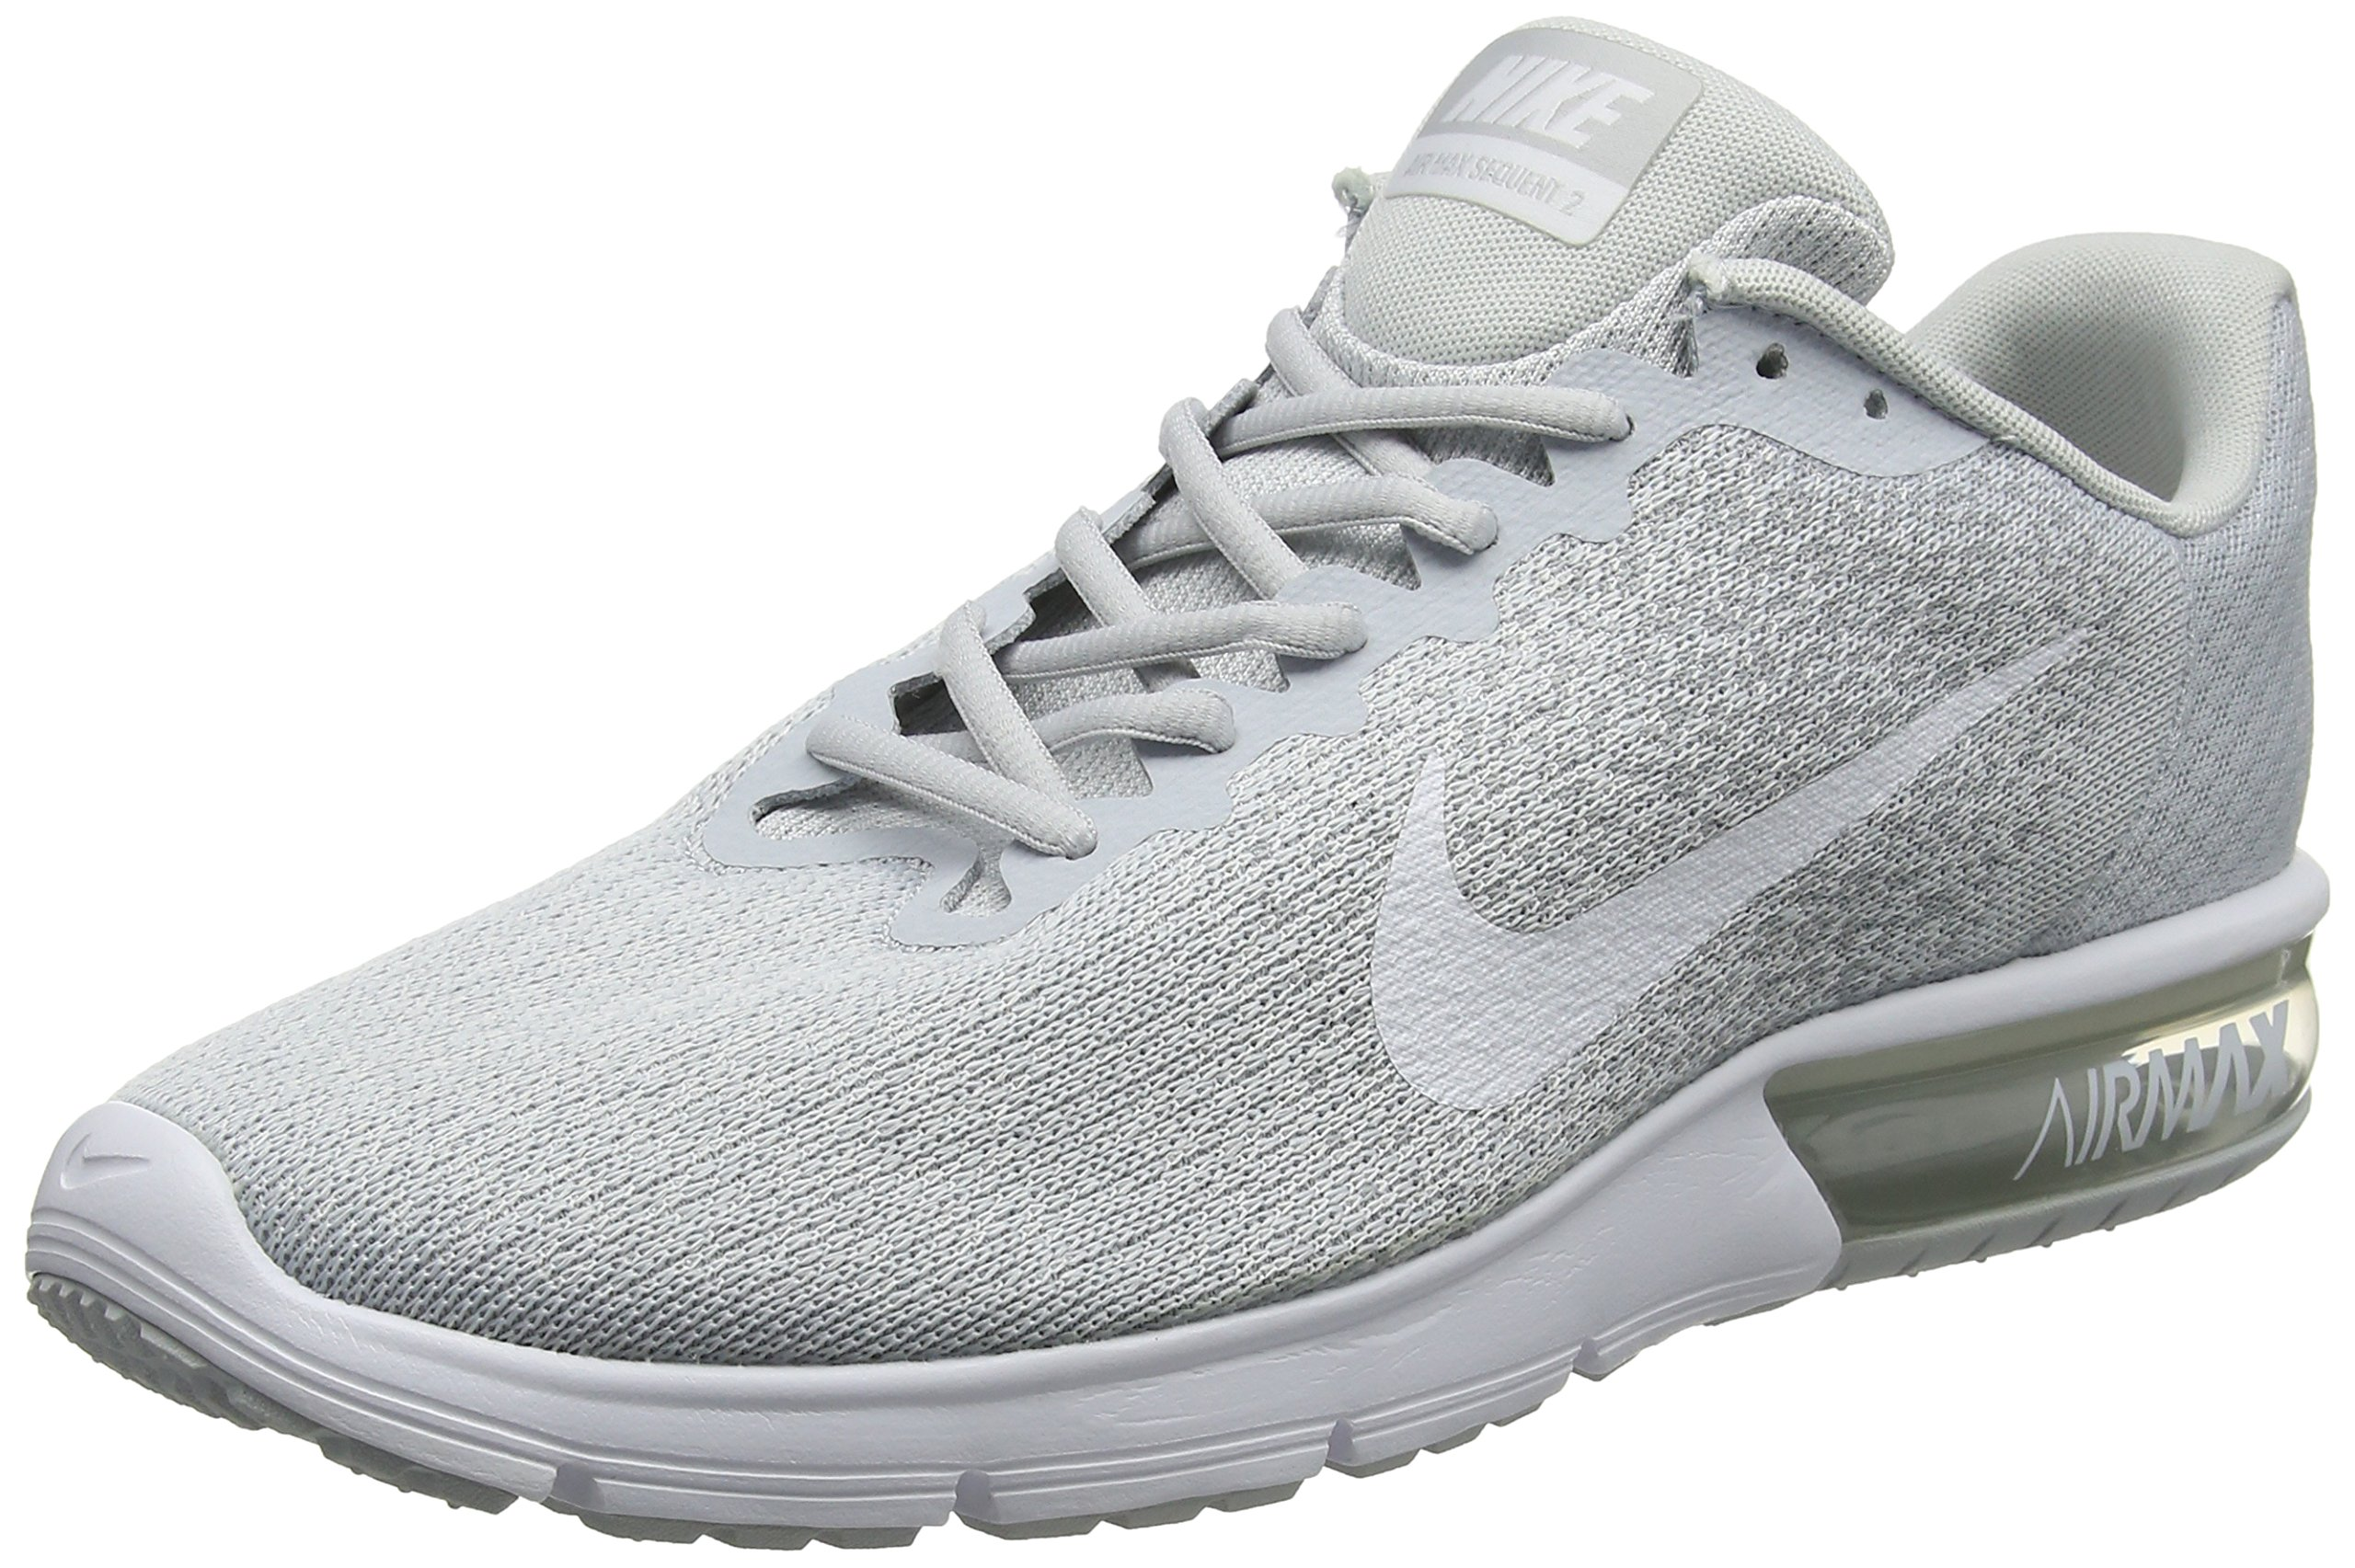 uk availability e4e8b 4a38f Galleon - Nike Air Max Sequent 2 Mens Style  852461-007 Size  11 M US